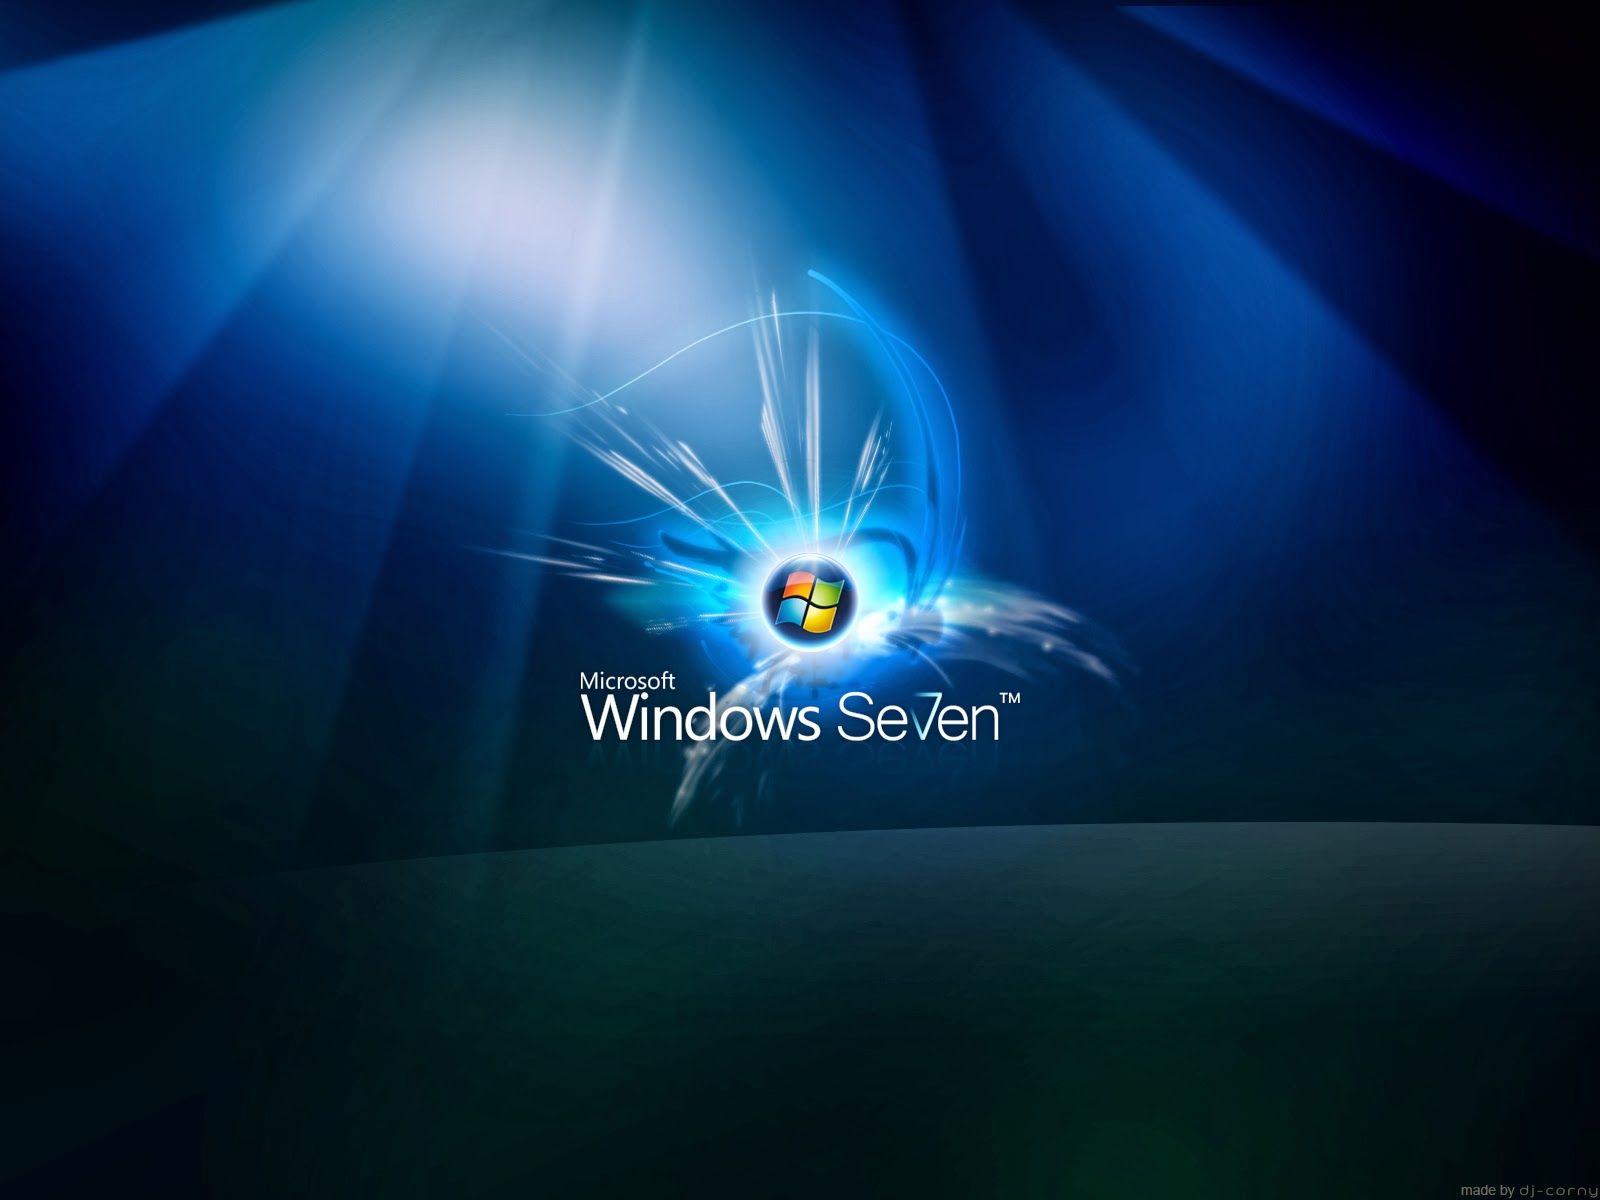 how to get rid of build 7601 windows 7